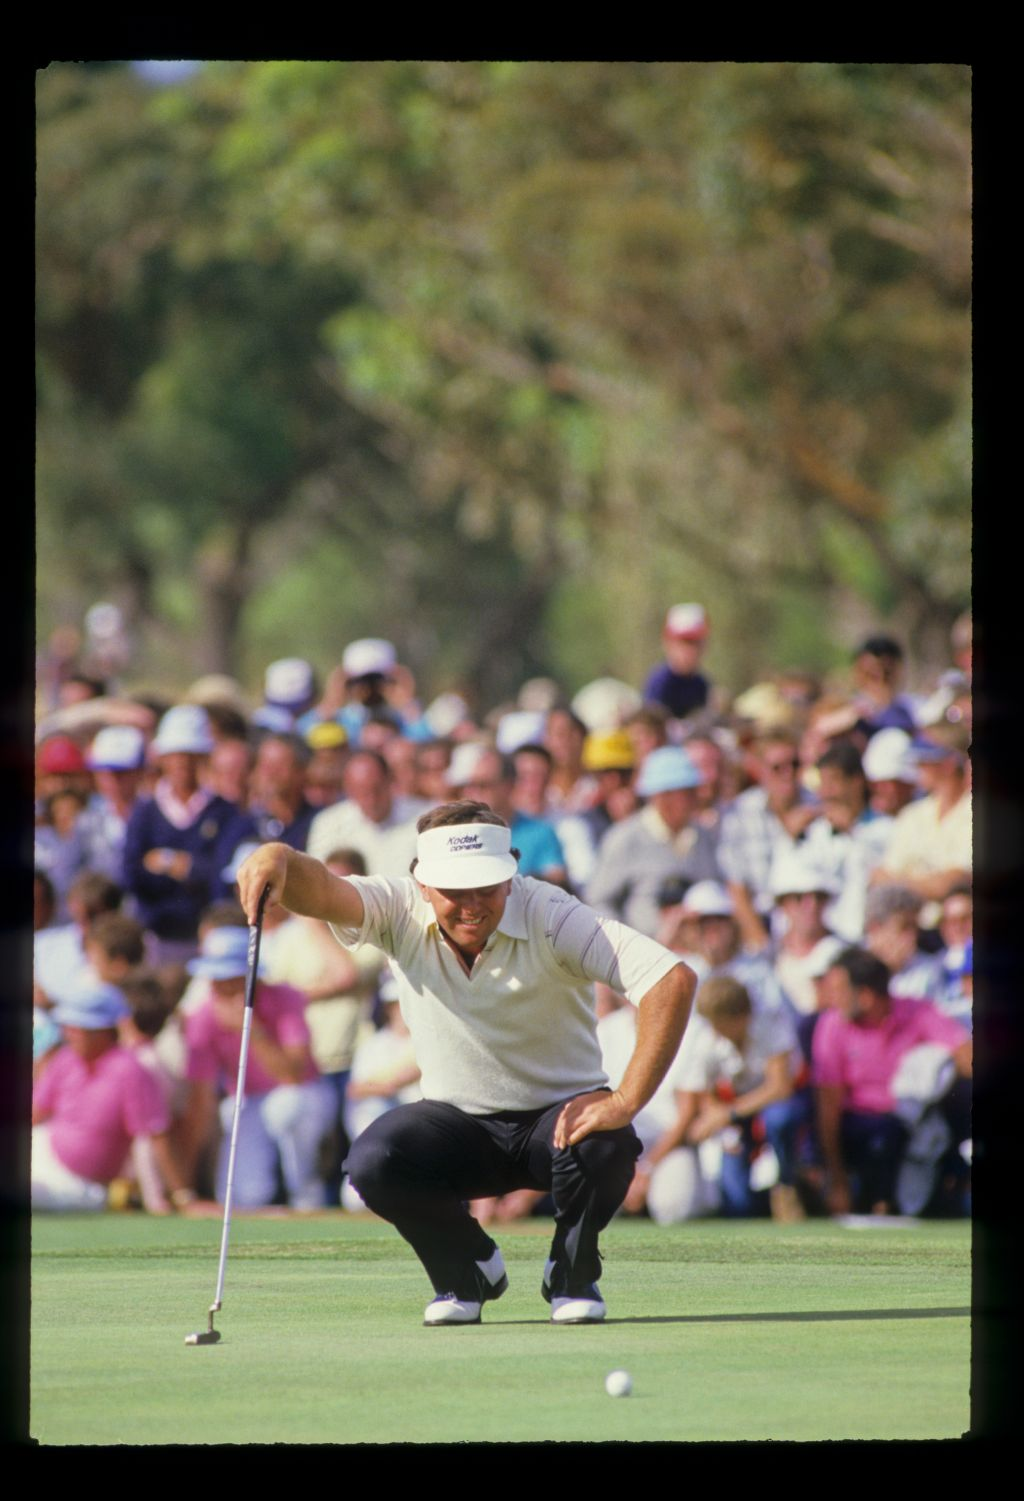 Mark O'Meara lining up a putt on his way to winning the 1986 Australian Masters